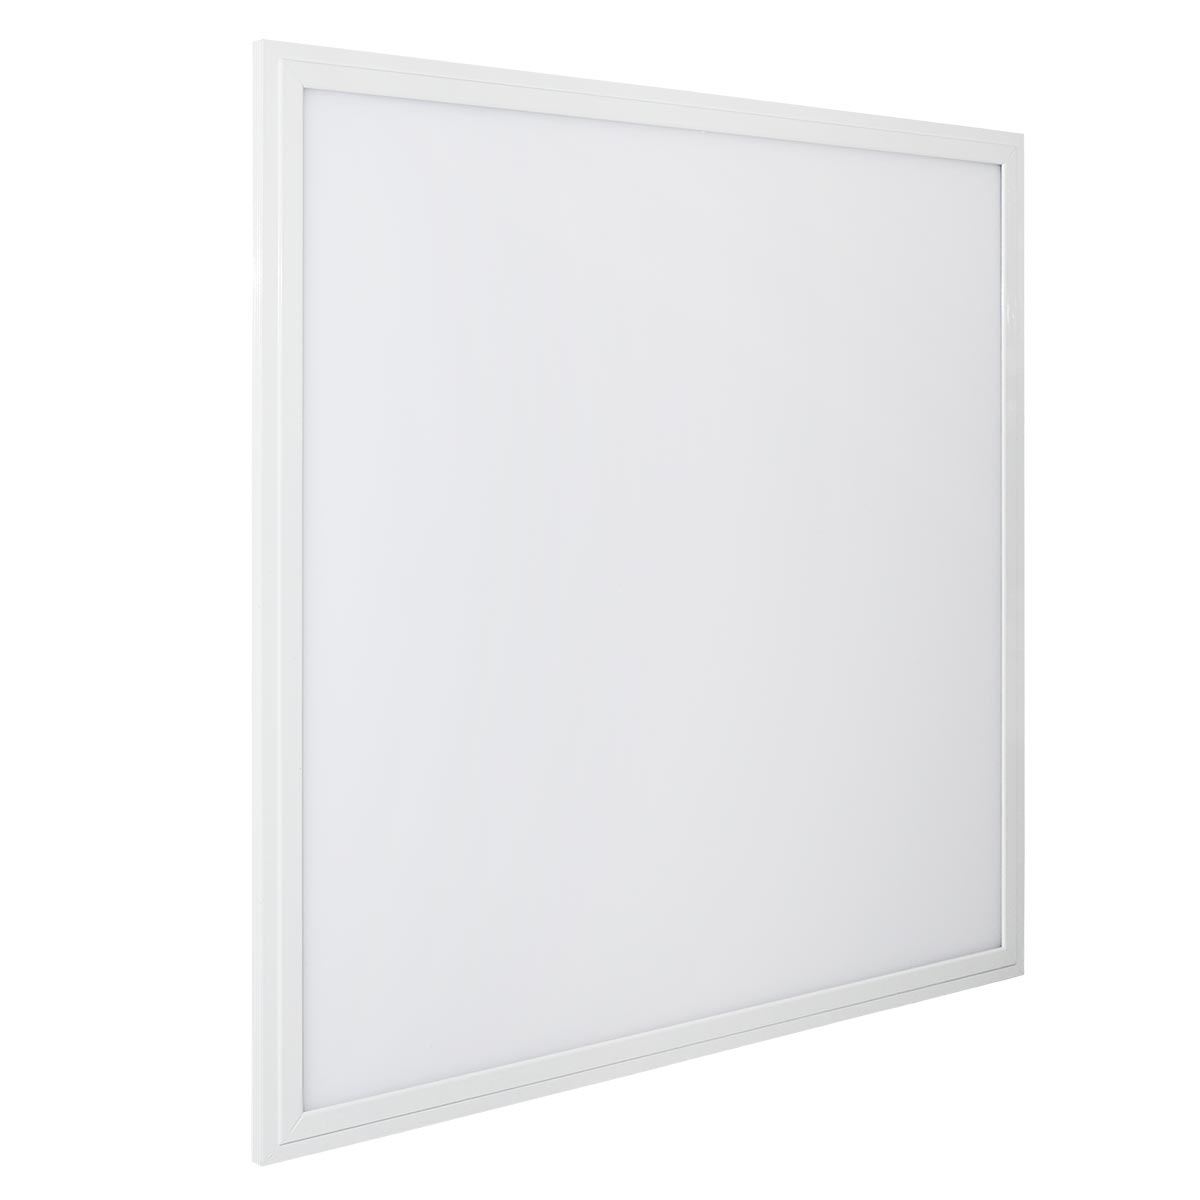 LED Light Panel 620x620 Weiss 54W 6'200lm UGR19 IP20